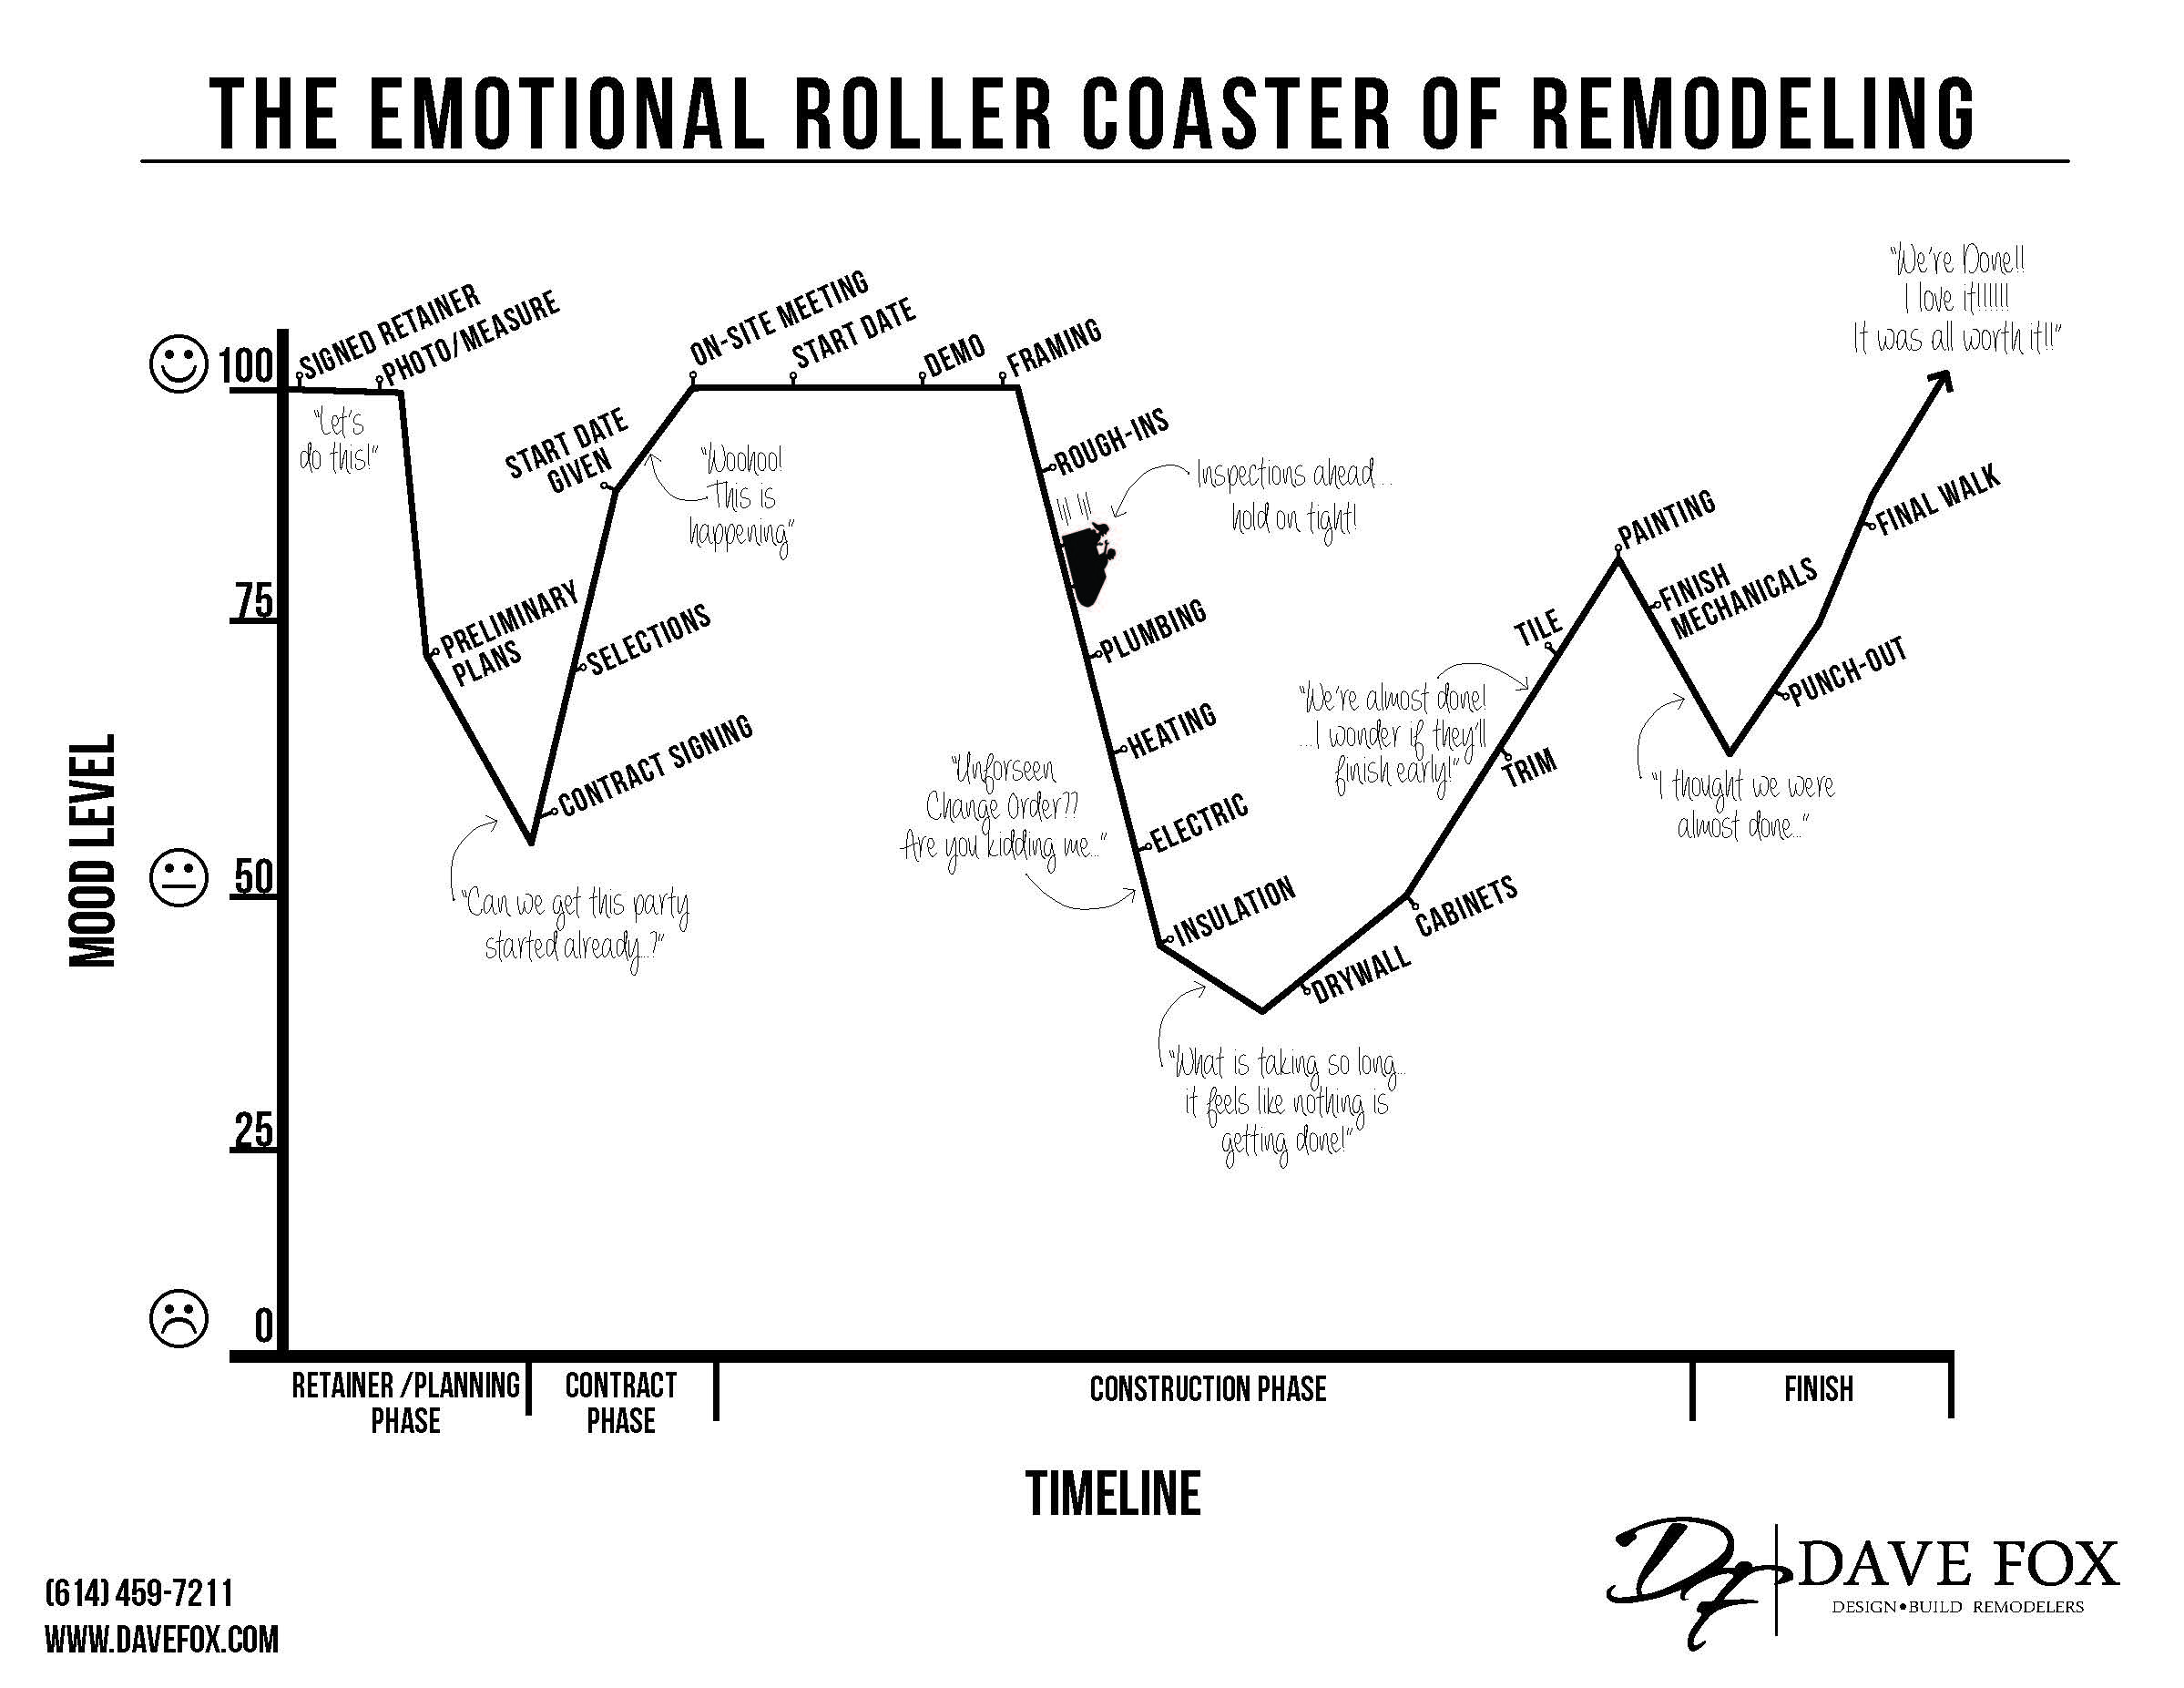 Emotional Rollercoaster of Remodeling